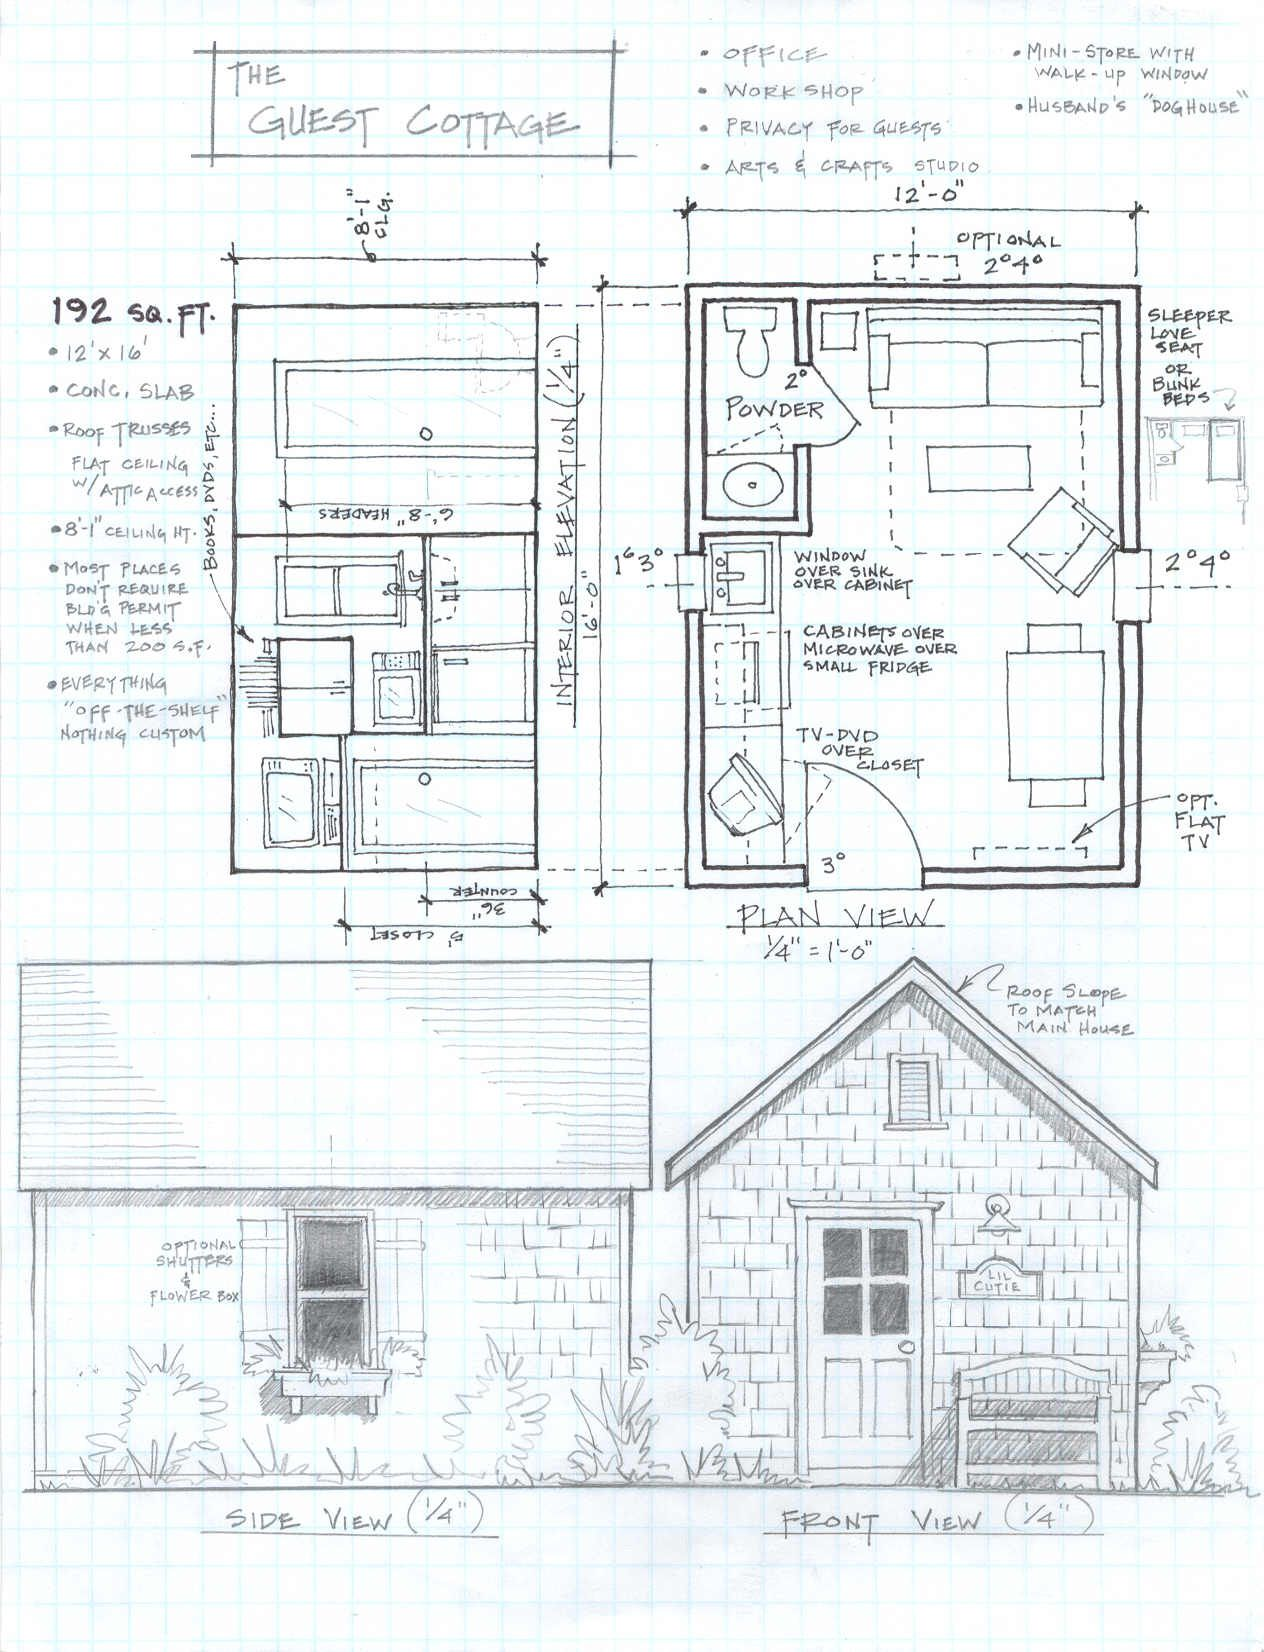 30 Small Cabin Plans For The Homestead Prepper The Survivalist Blog Small Cabin Small Cabin Plans Cabin Plans